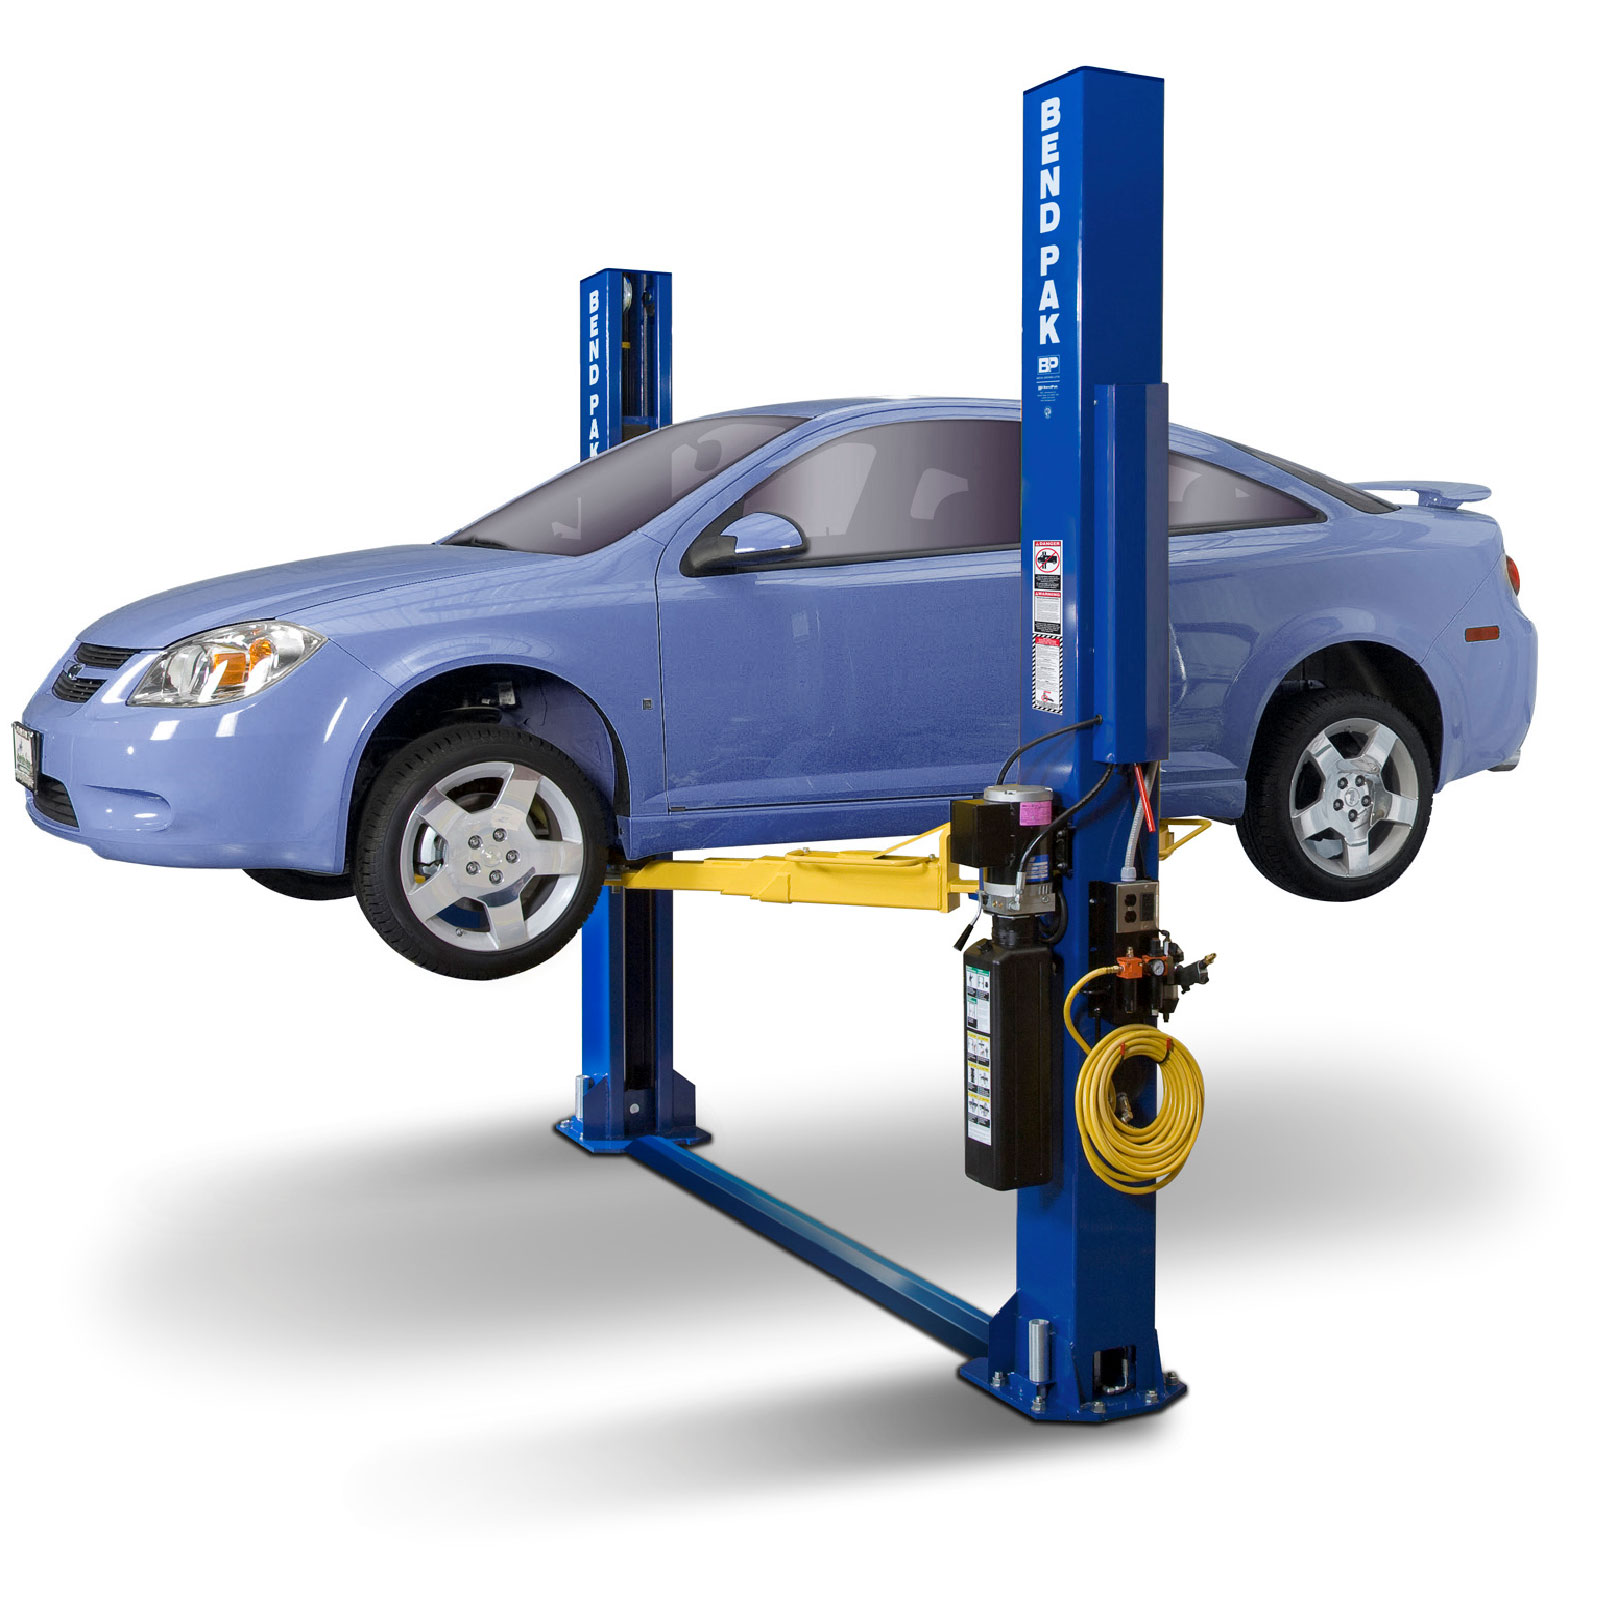 BendPak - XPR-9S - Floorplate Style Two-Post Lift / Screw Pads / Chain Drive